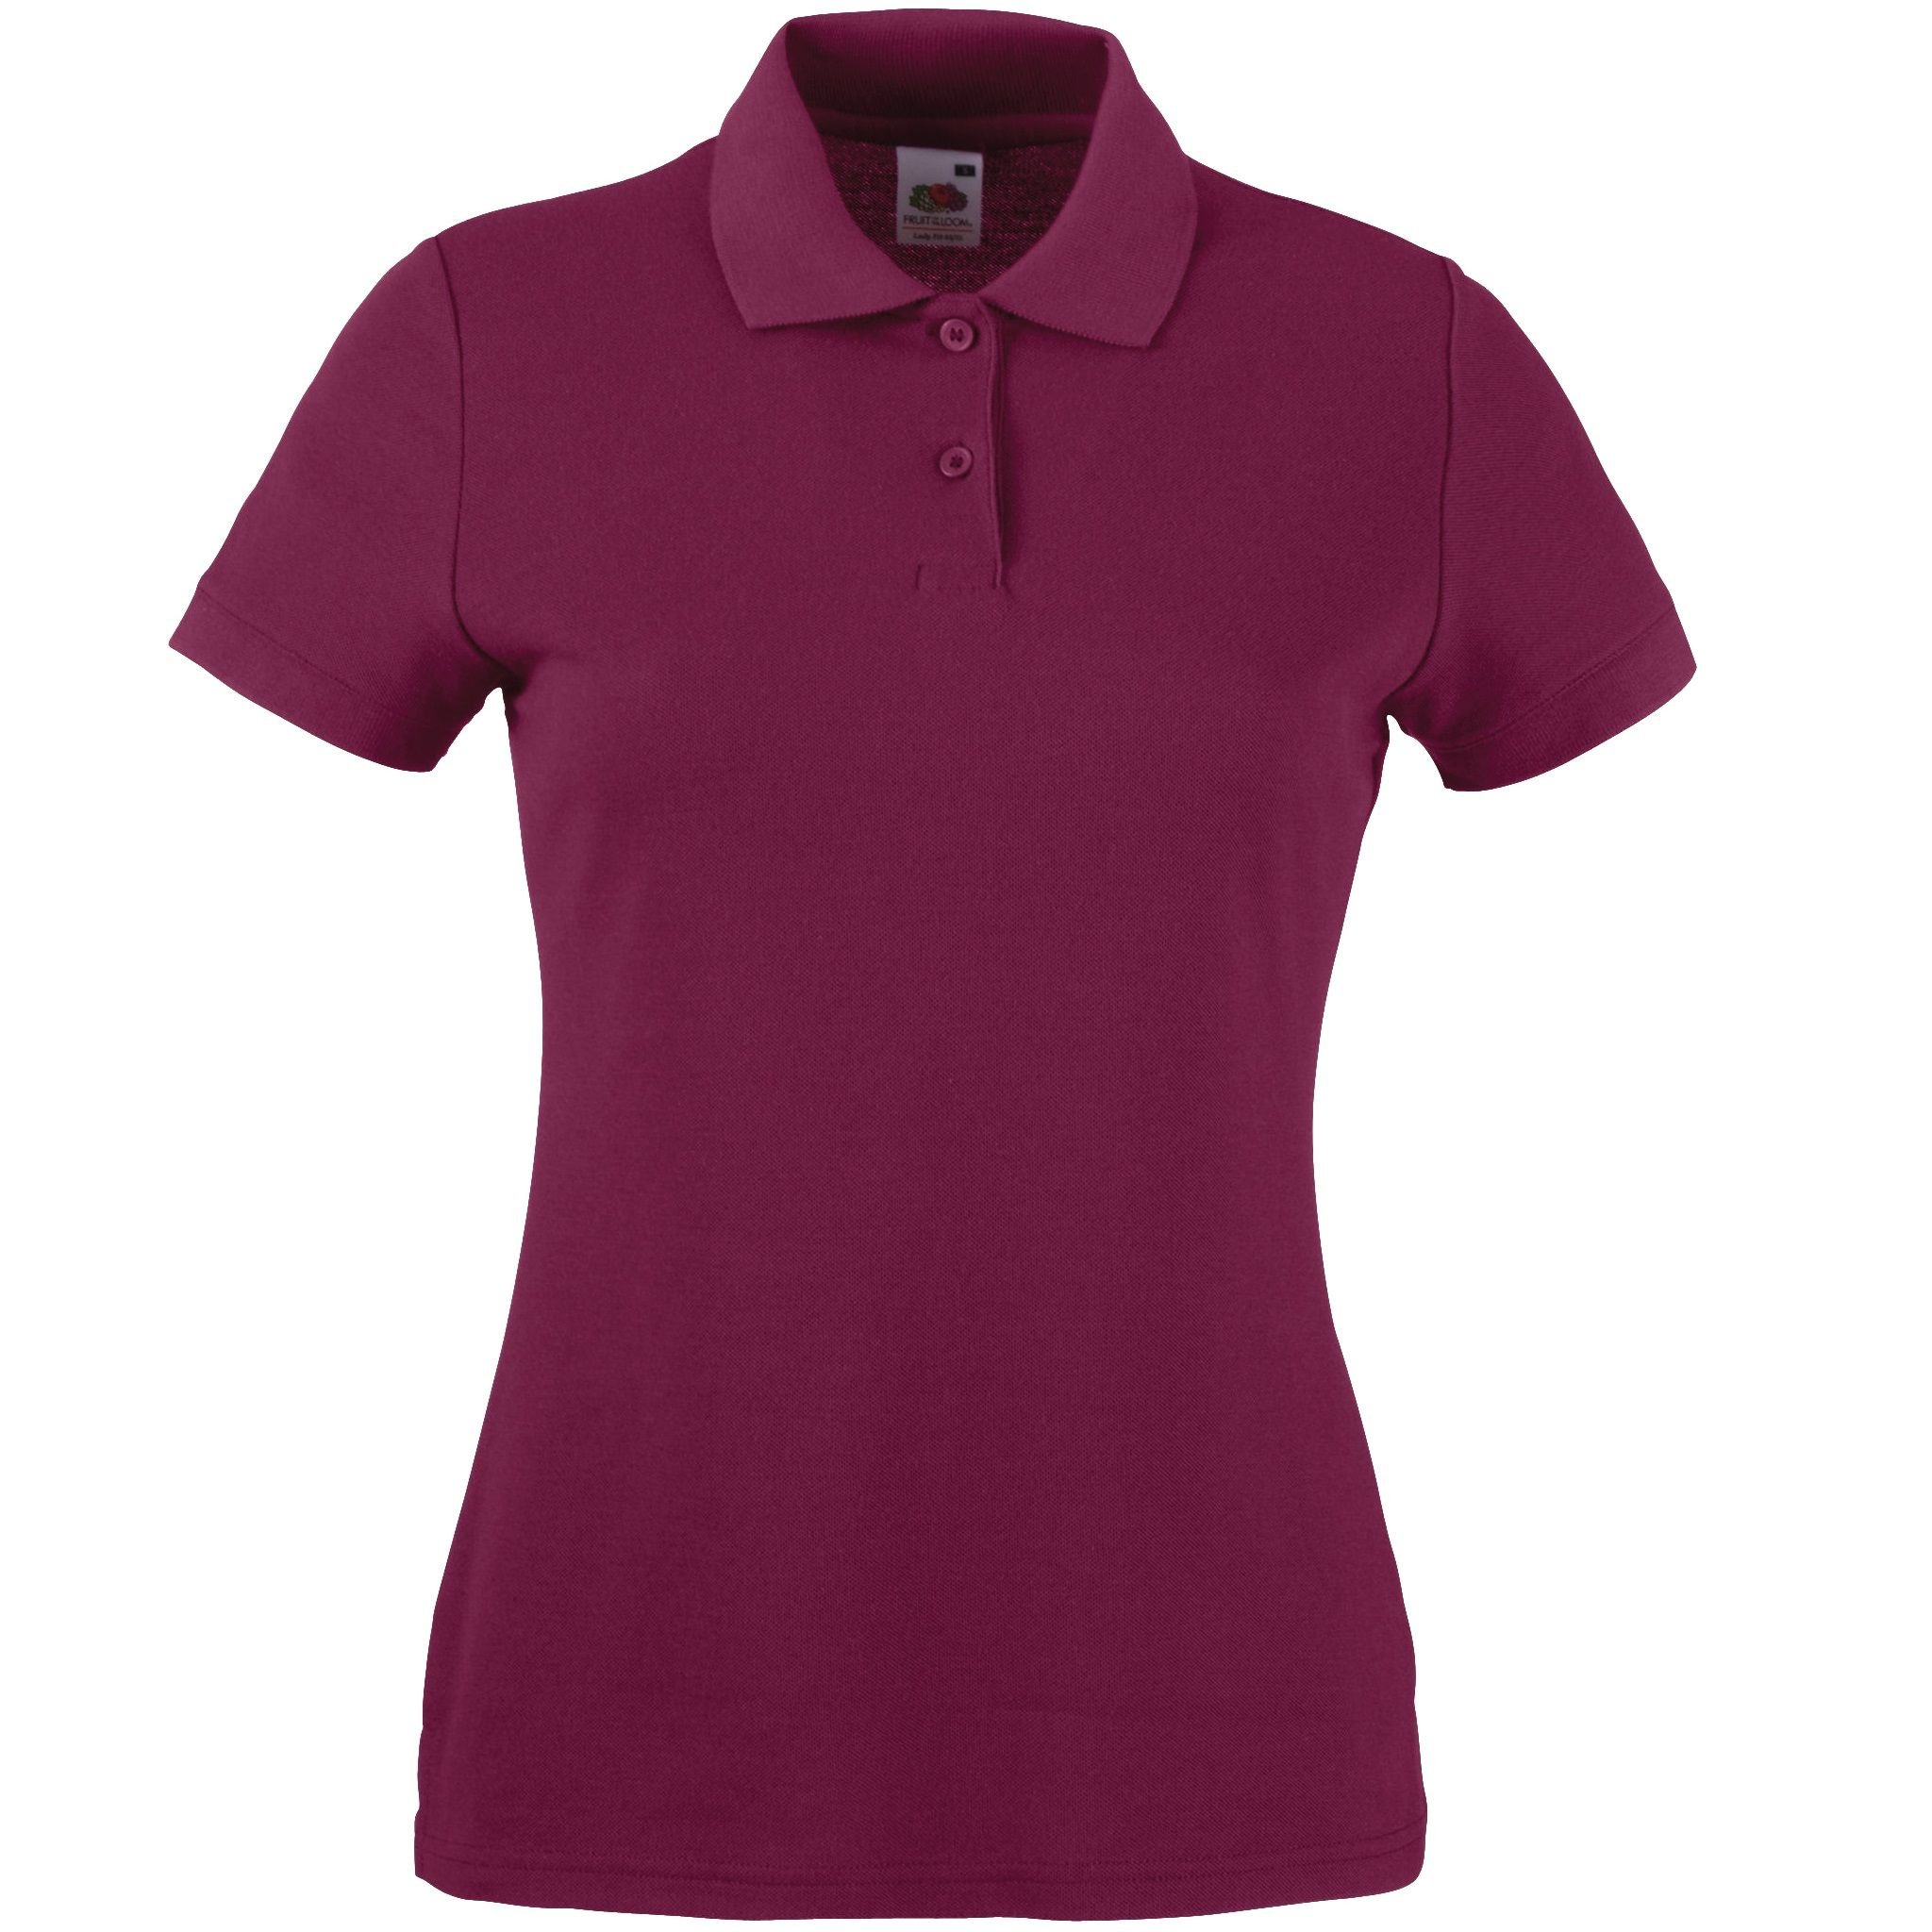 Ladies fit embroidered 65 35 polo shirt for Polo shirts with embroidery